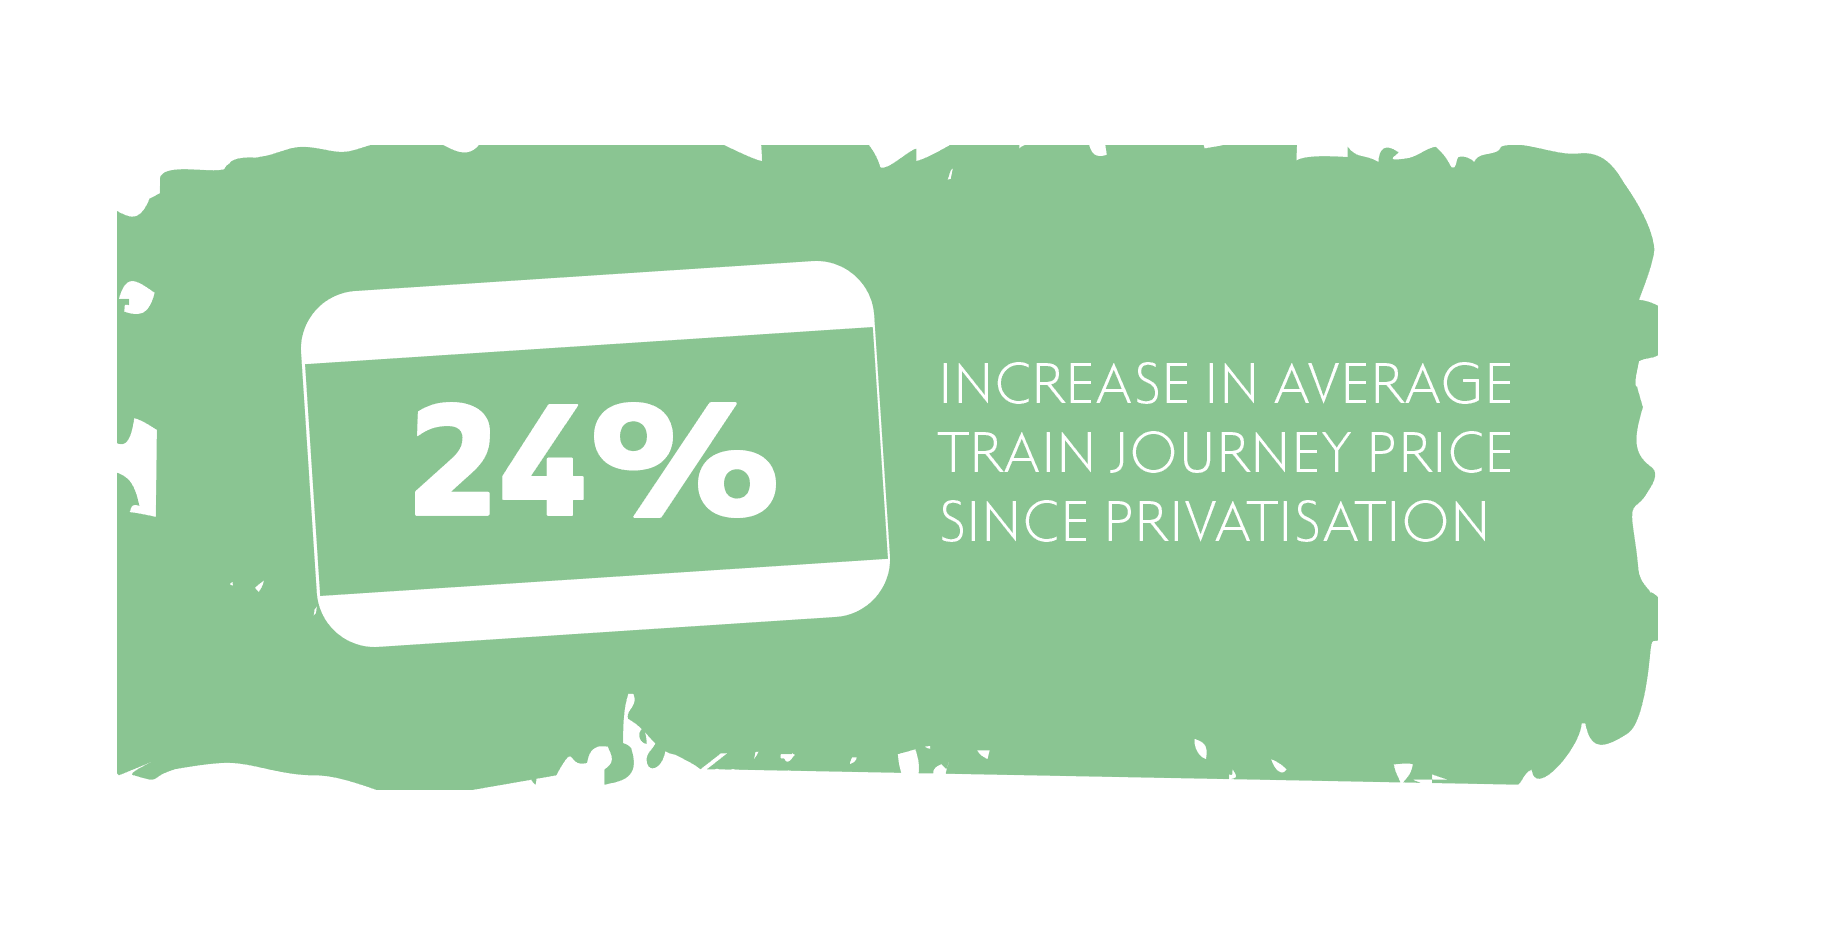 24% increase in train journey price